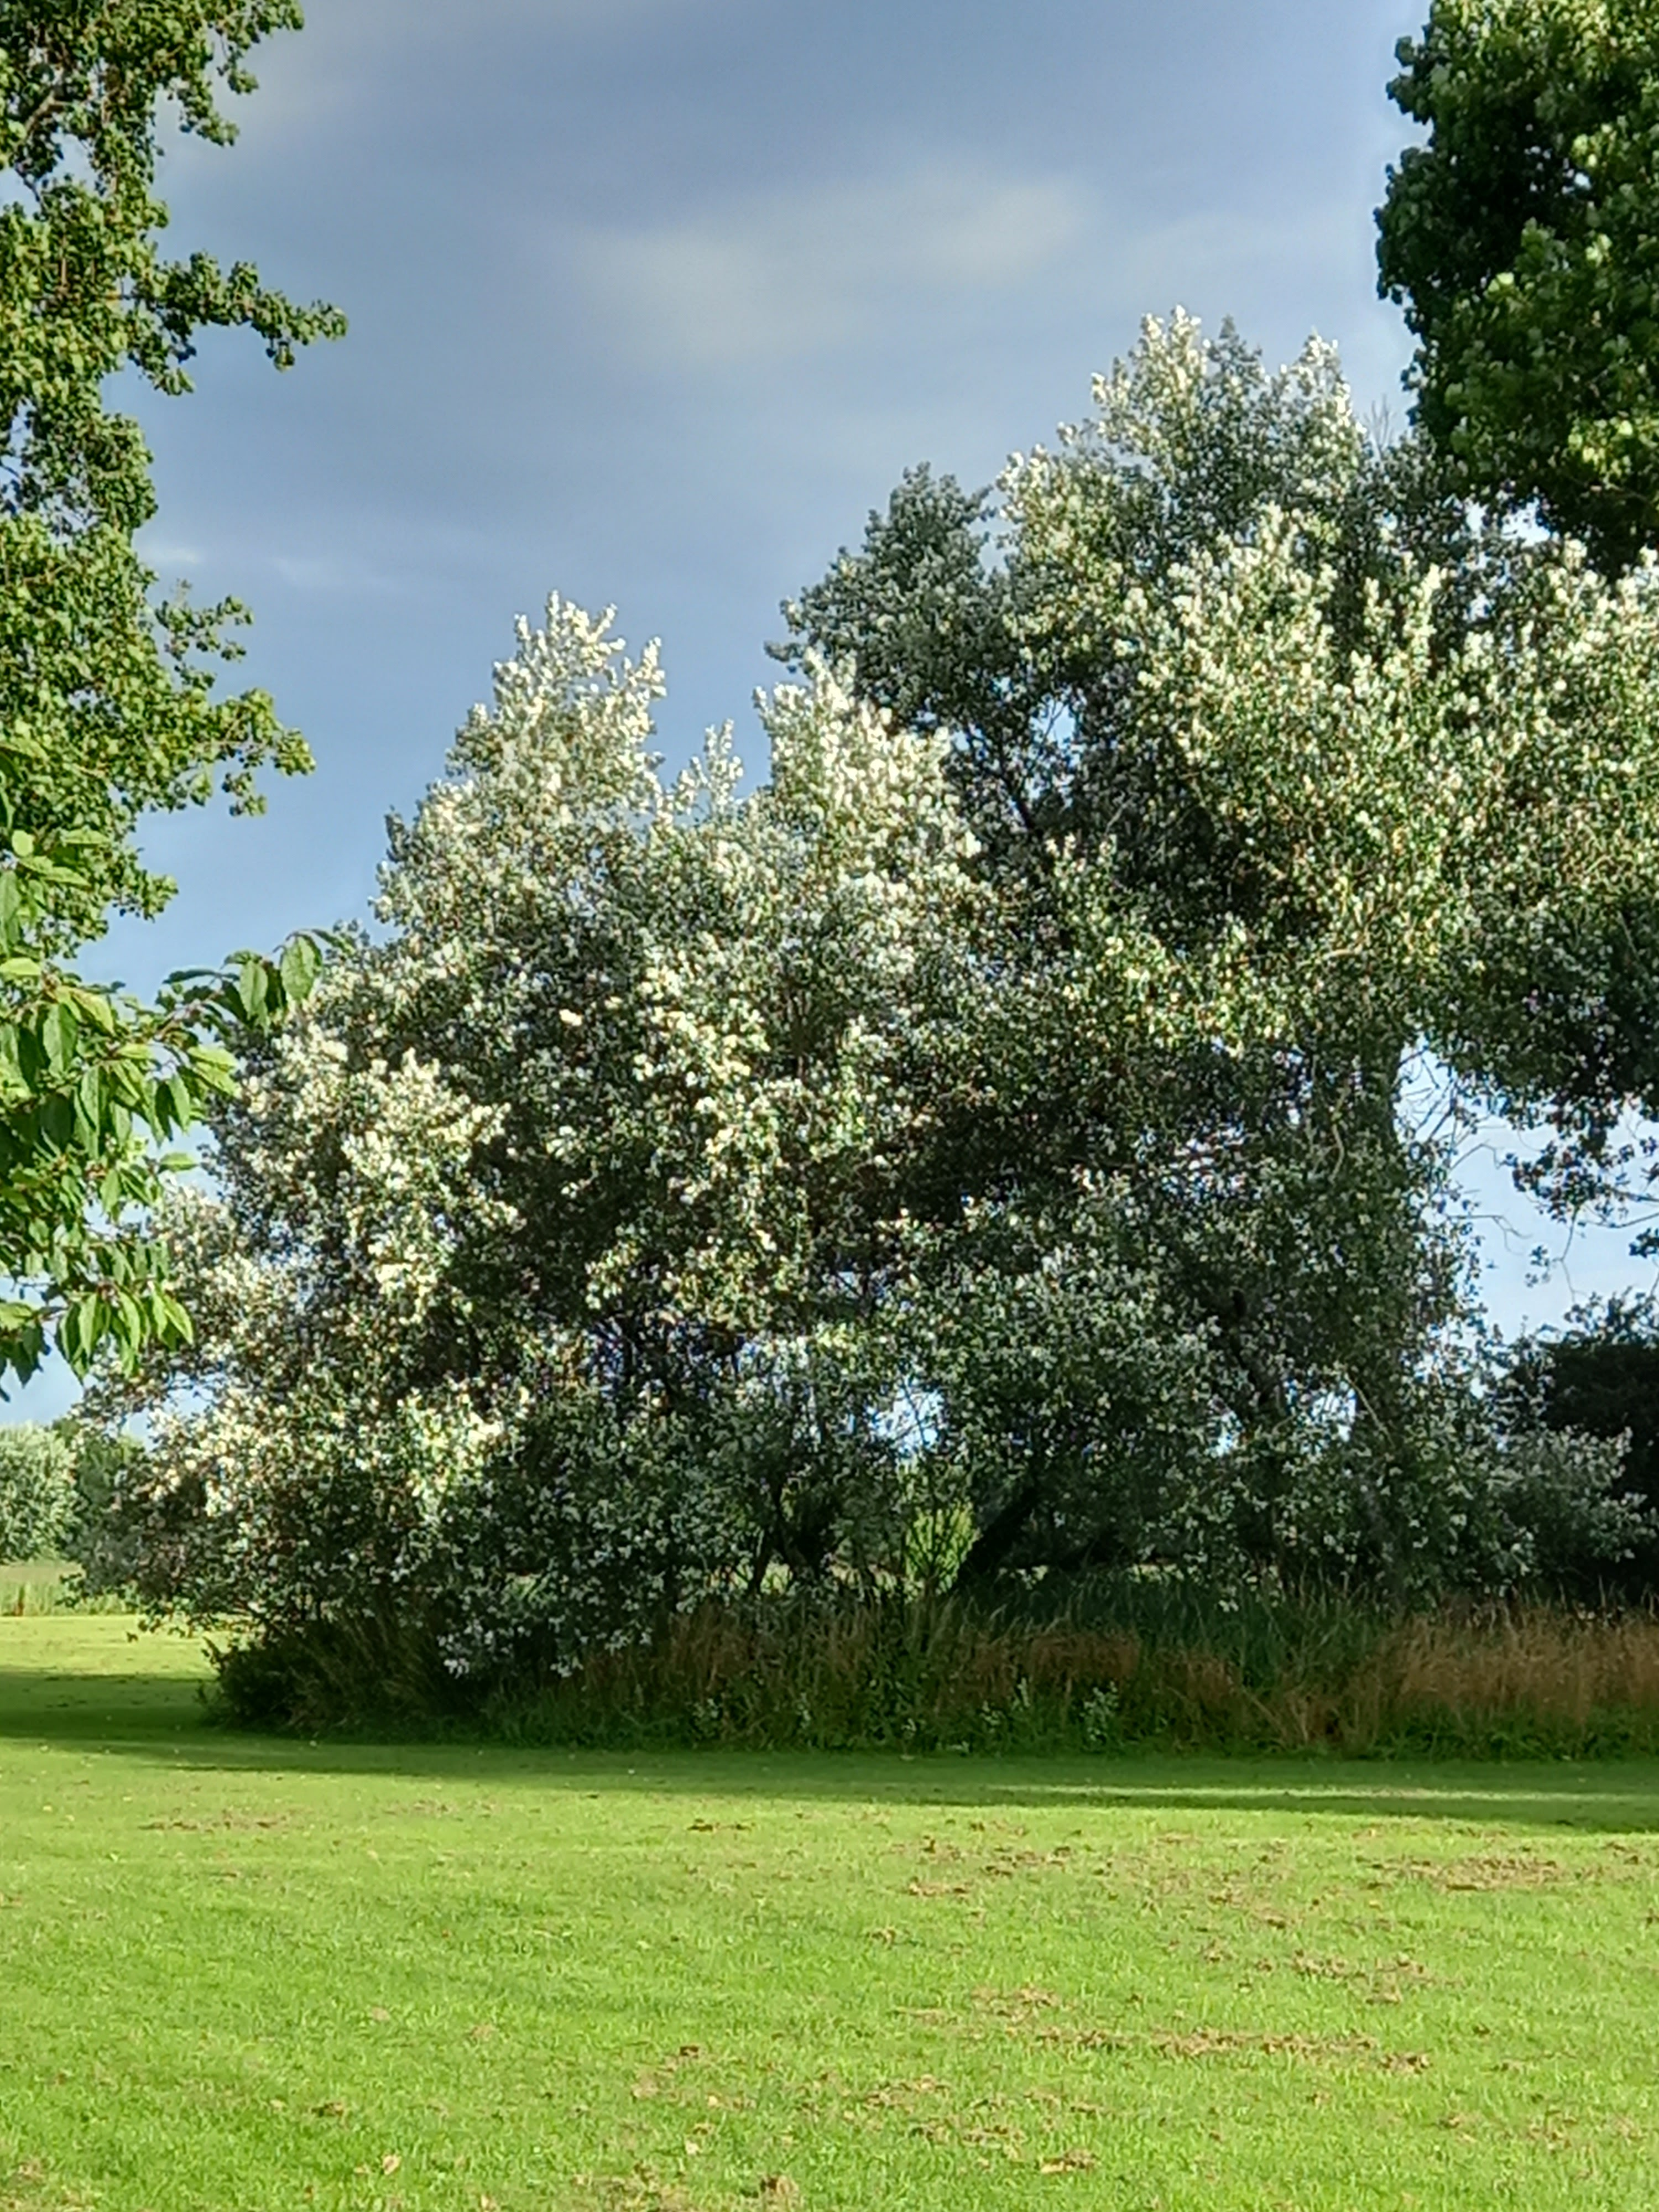 Trees fluttering and dancing in a light breeze last Sunday afternoon. Taken by Diane Woodrow